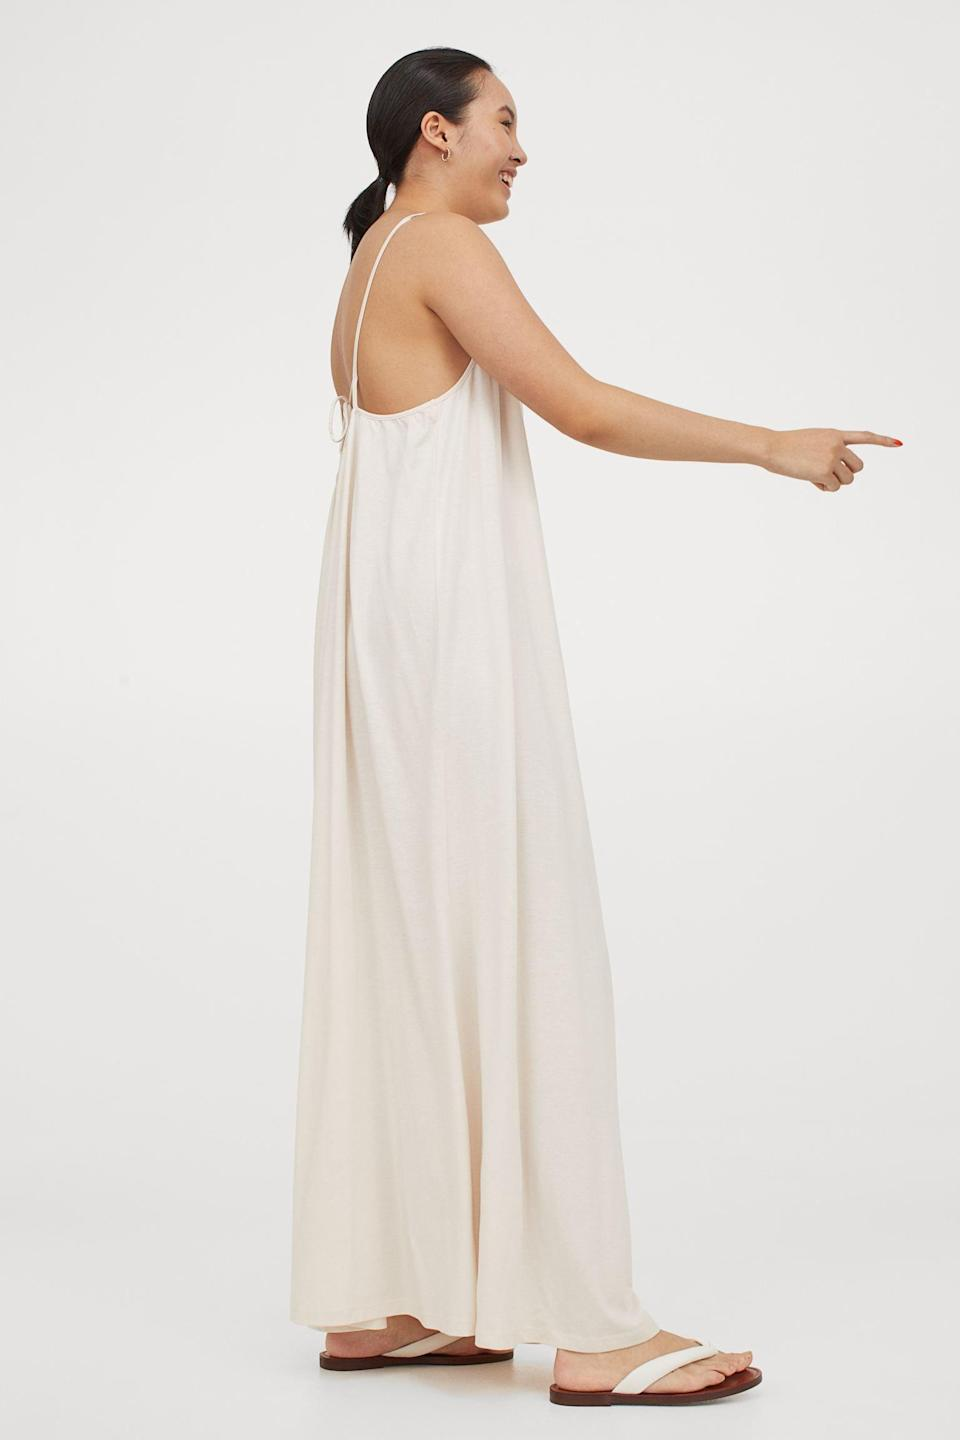 <p>Headed to the airport, and want something comfy? This <span>Sleeveless Maxi Dress</span> ($25) has you covered with effortless style, a relaxed silhouette, and maximum comfort.</p>